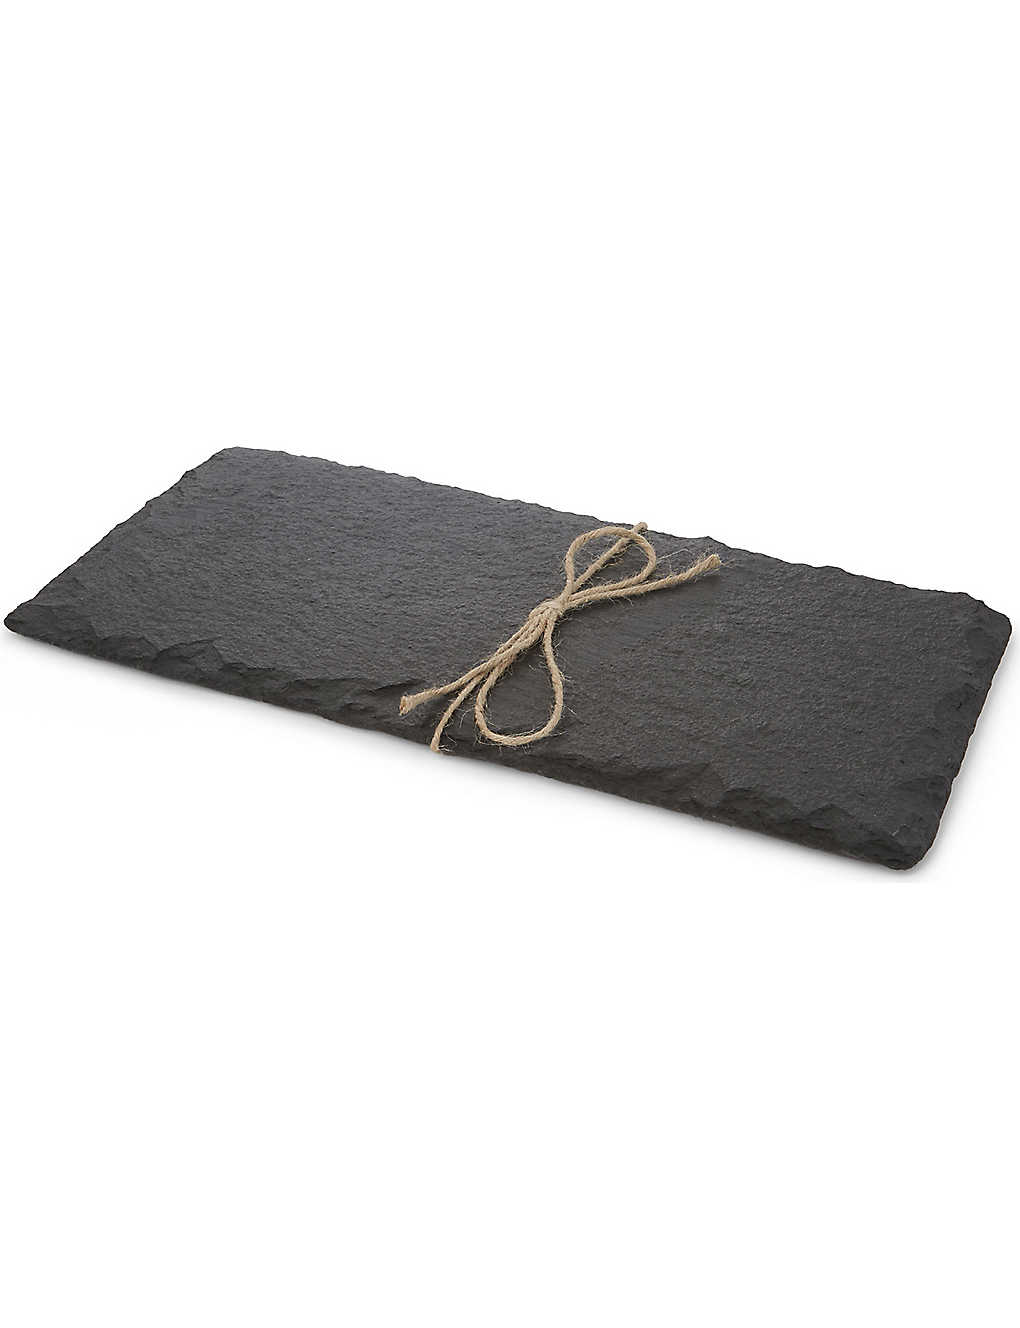 PAXTON & WHITFIELD: Medium slate cheese board